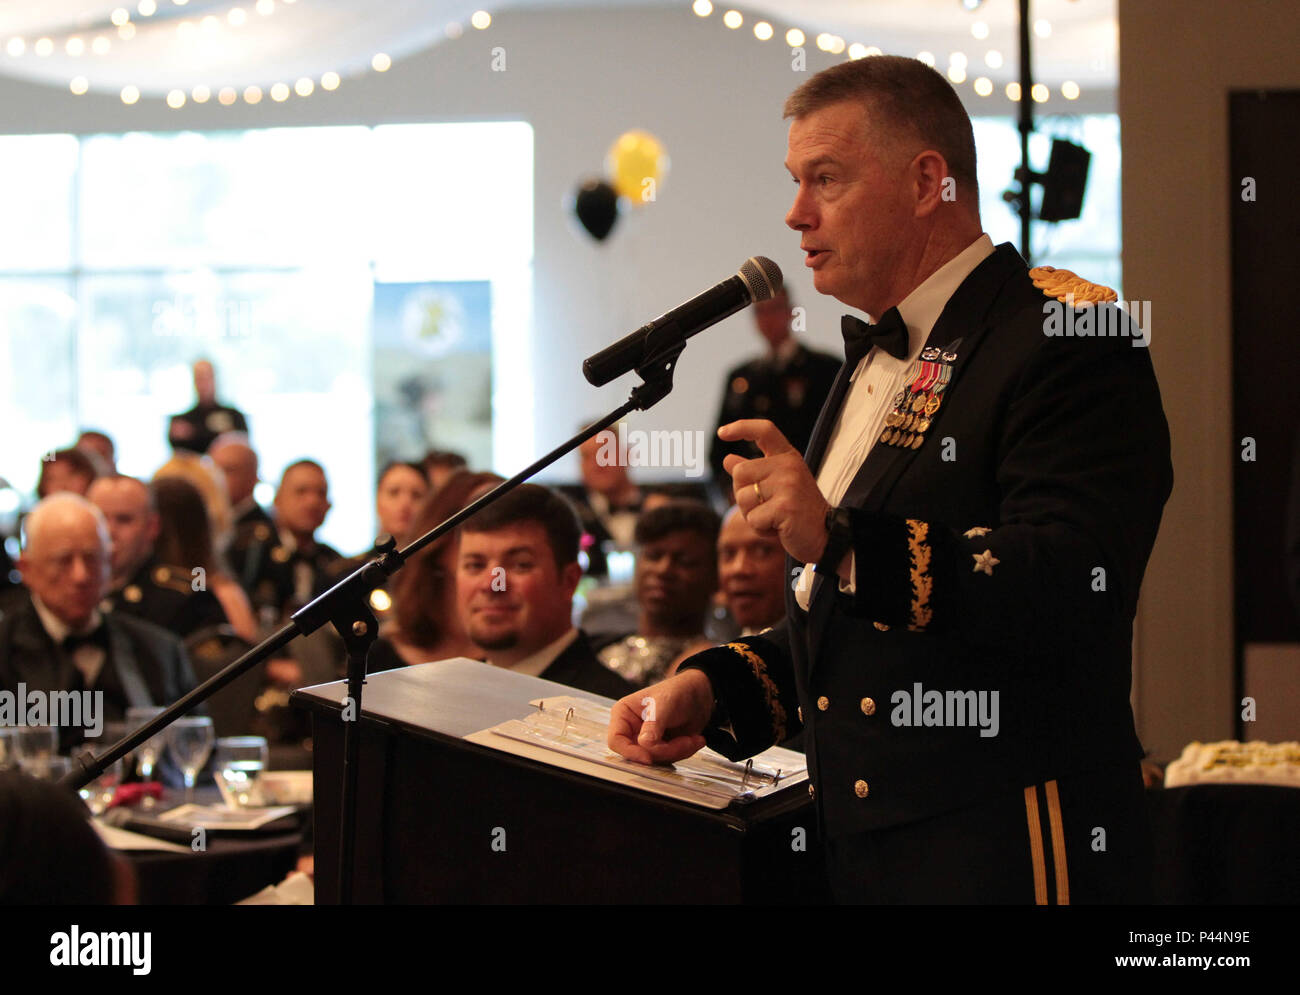 The 76th Operational Response Command (ORC), Commander, Maj. Gen. Ricky L. Waddell, hosted a Utah Army Ball in celebration of the United States Army's 241st birthday with nearly 300 people in attendance, Saturday, June 11, at the Living Planet Aquarium, Salt Lake City, Utah. - Stock Image